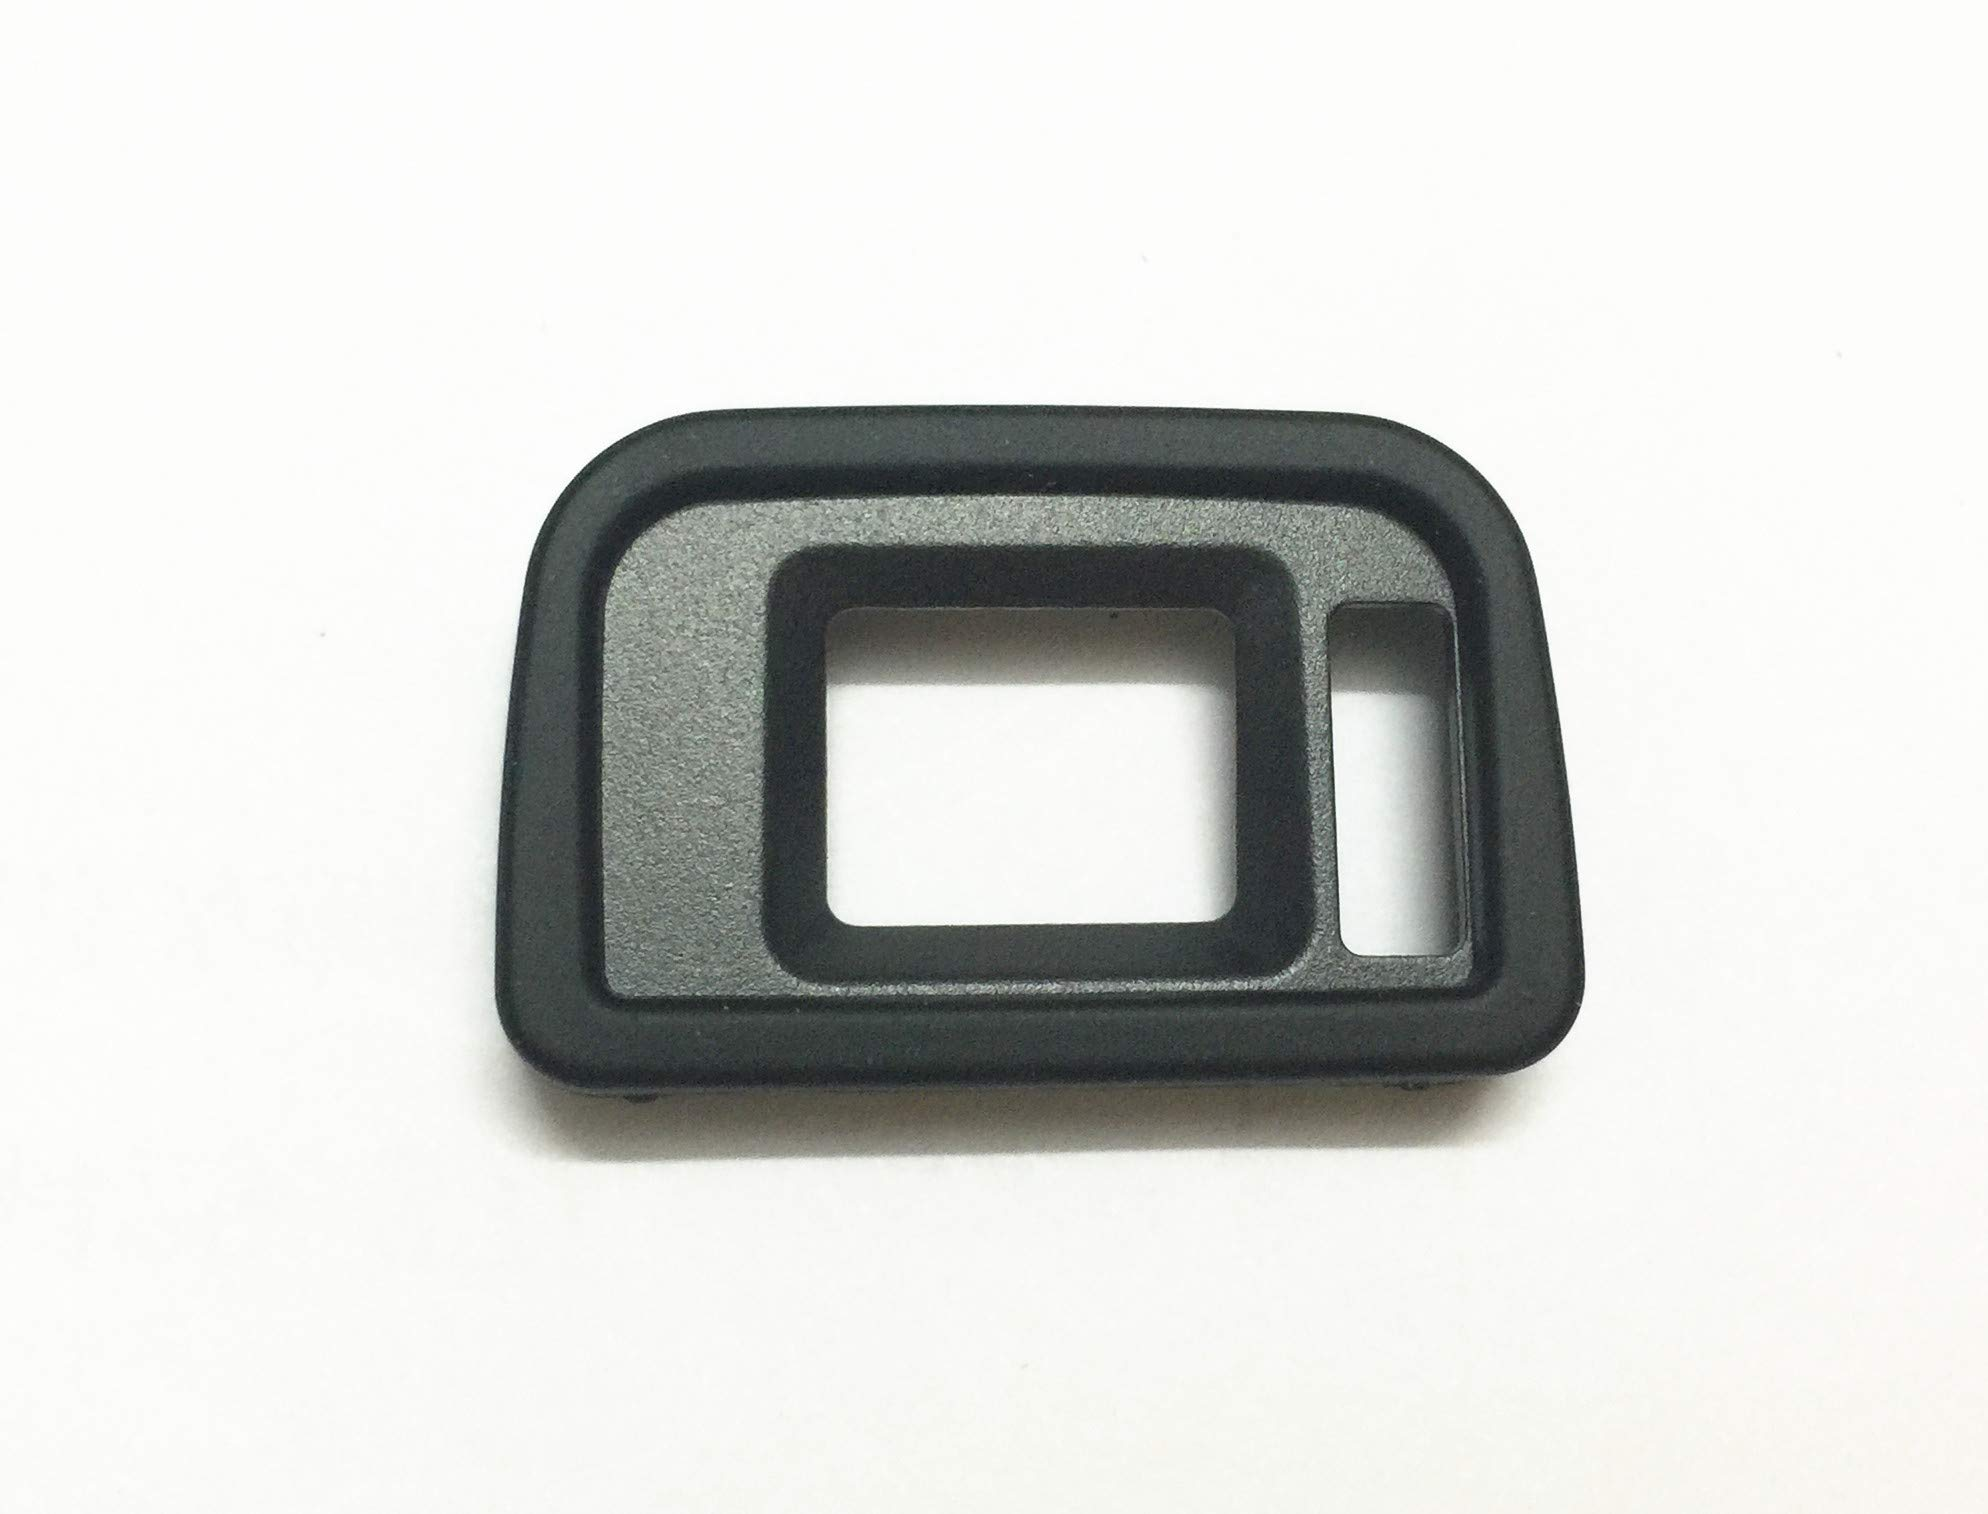 Replacement New Viewfinder Eye Cup Cap Eyecup Rubber VGQ0Q78 for Panasonic Lumix DMC-GH2